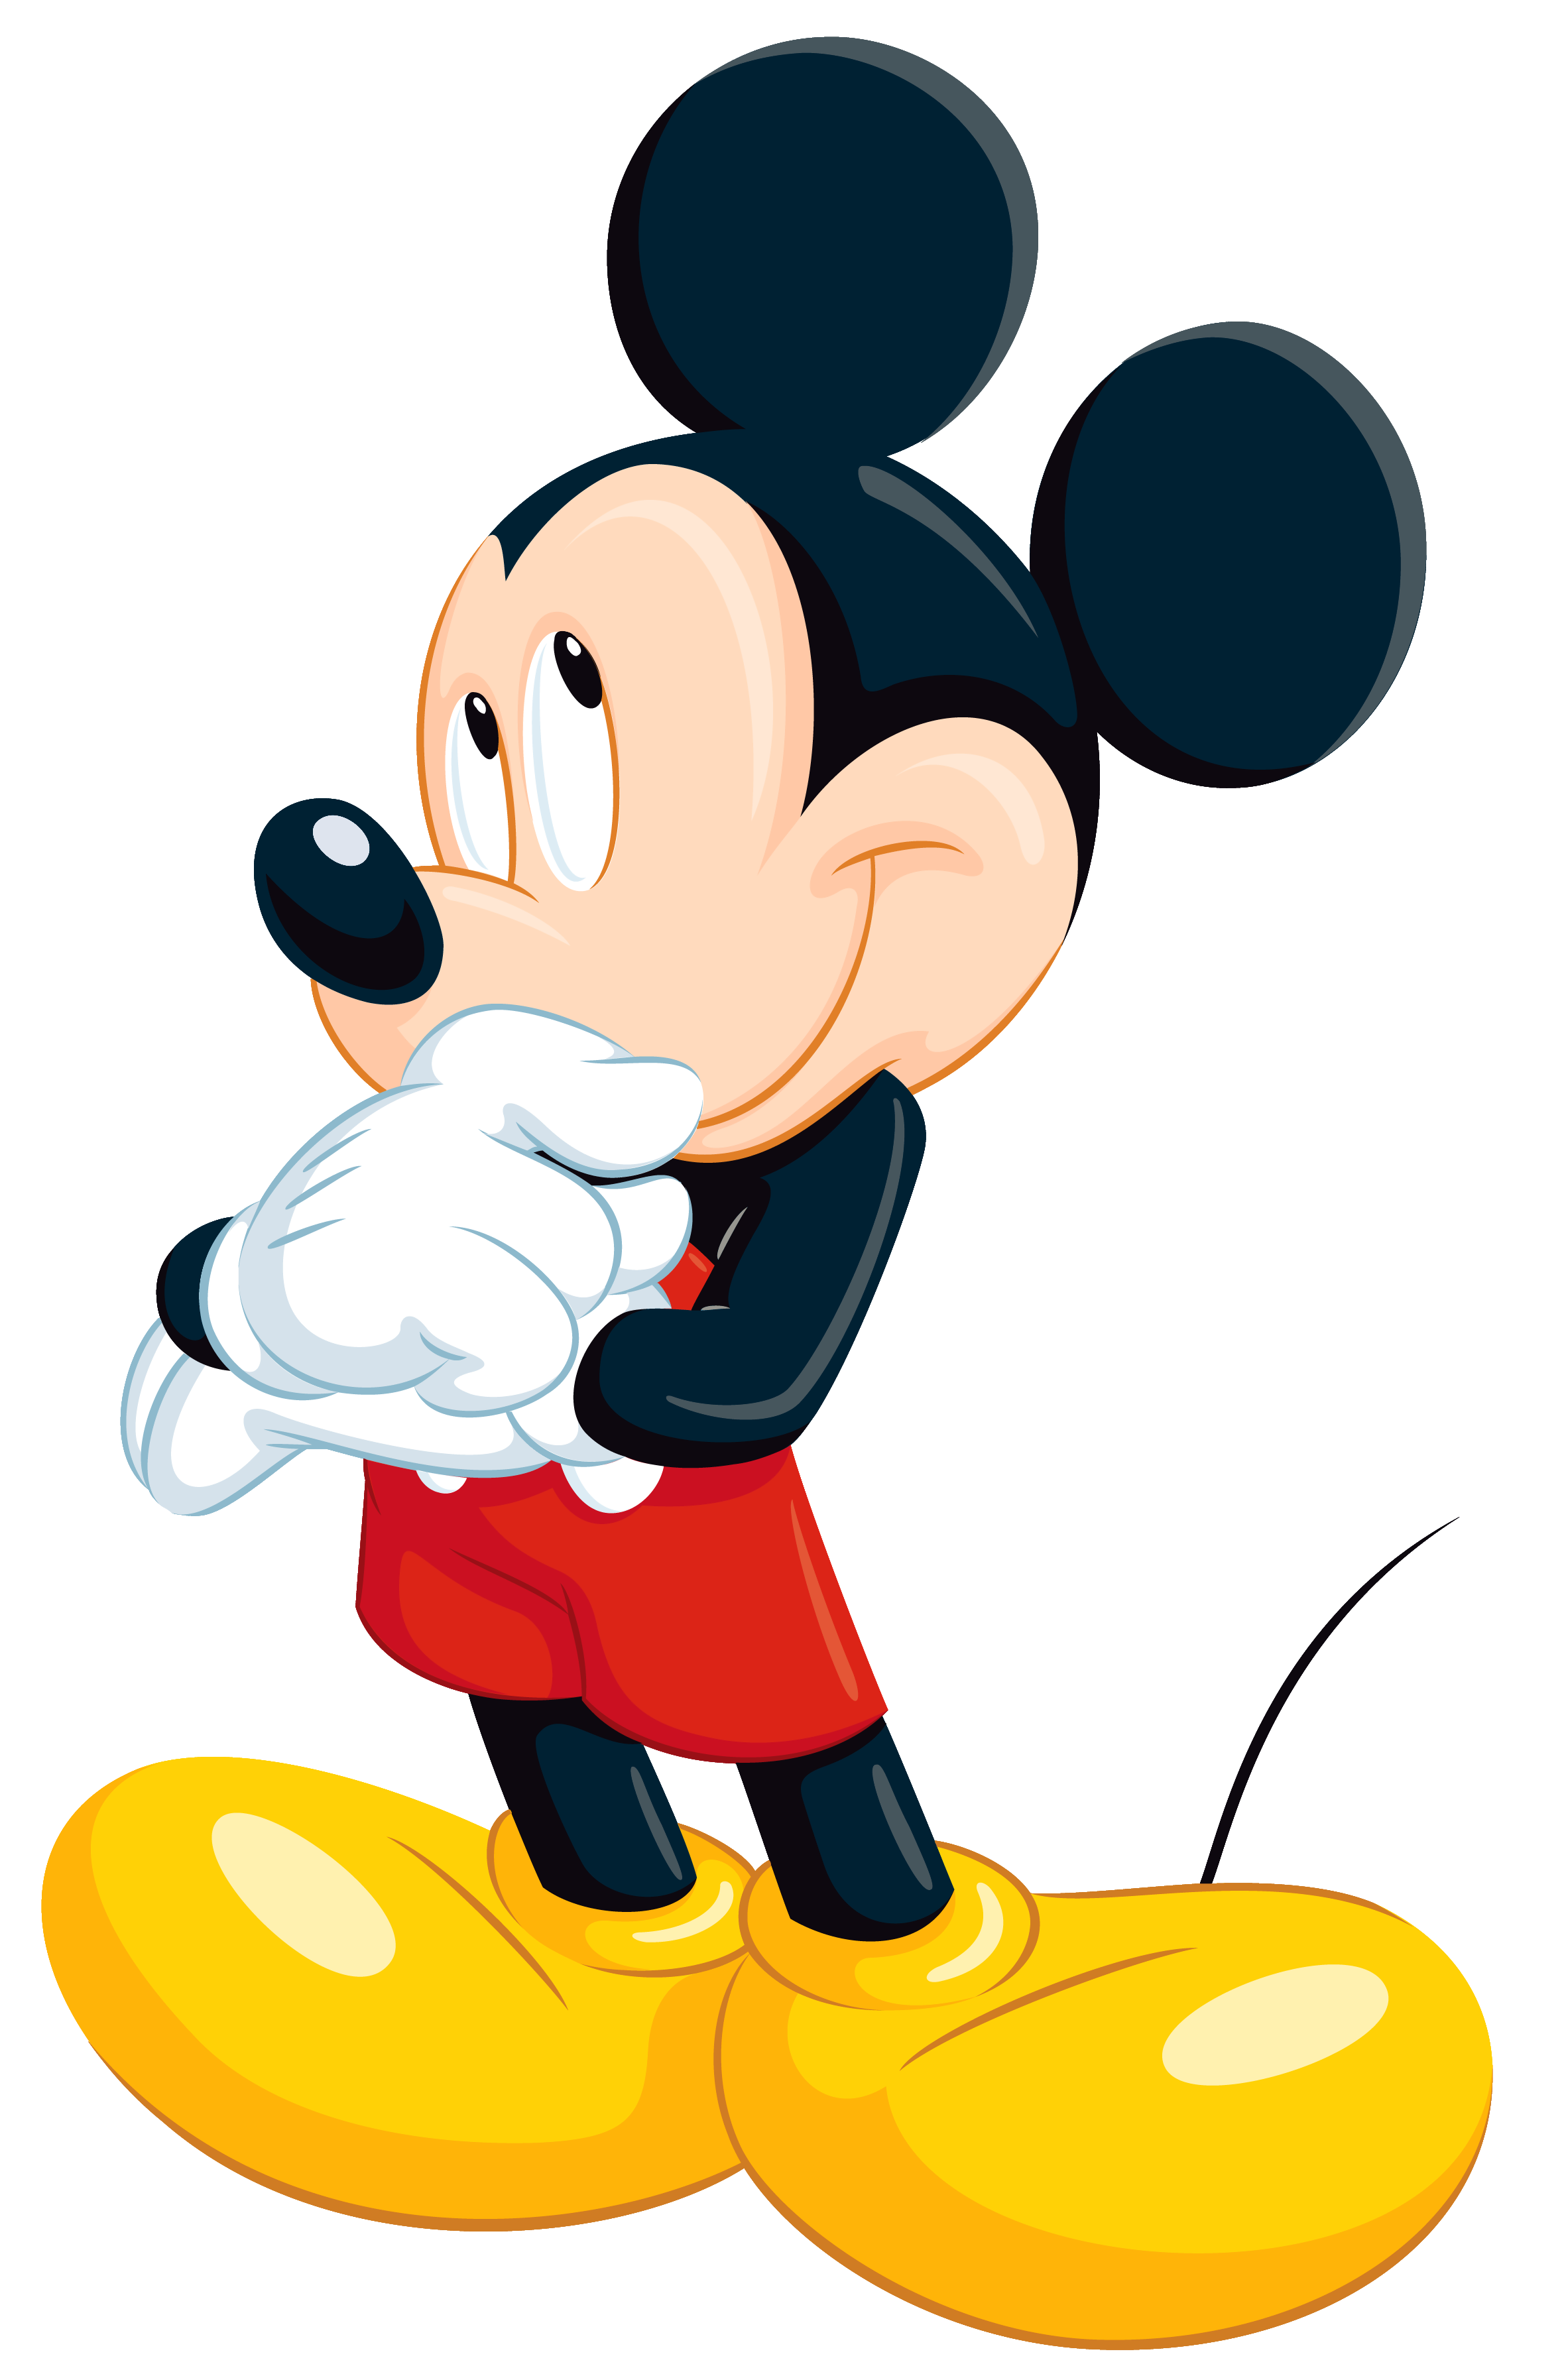 Baby disney basketball clipart image library stock Mickey Mouse PNG Clipart Image | Mesés képek | Pinterest | Mickey ... image library stock